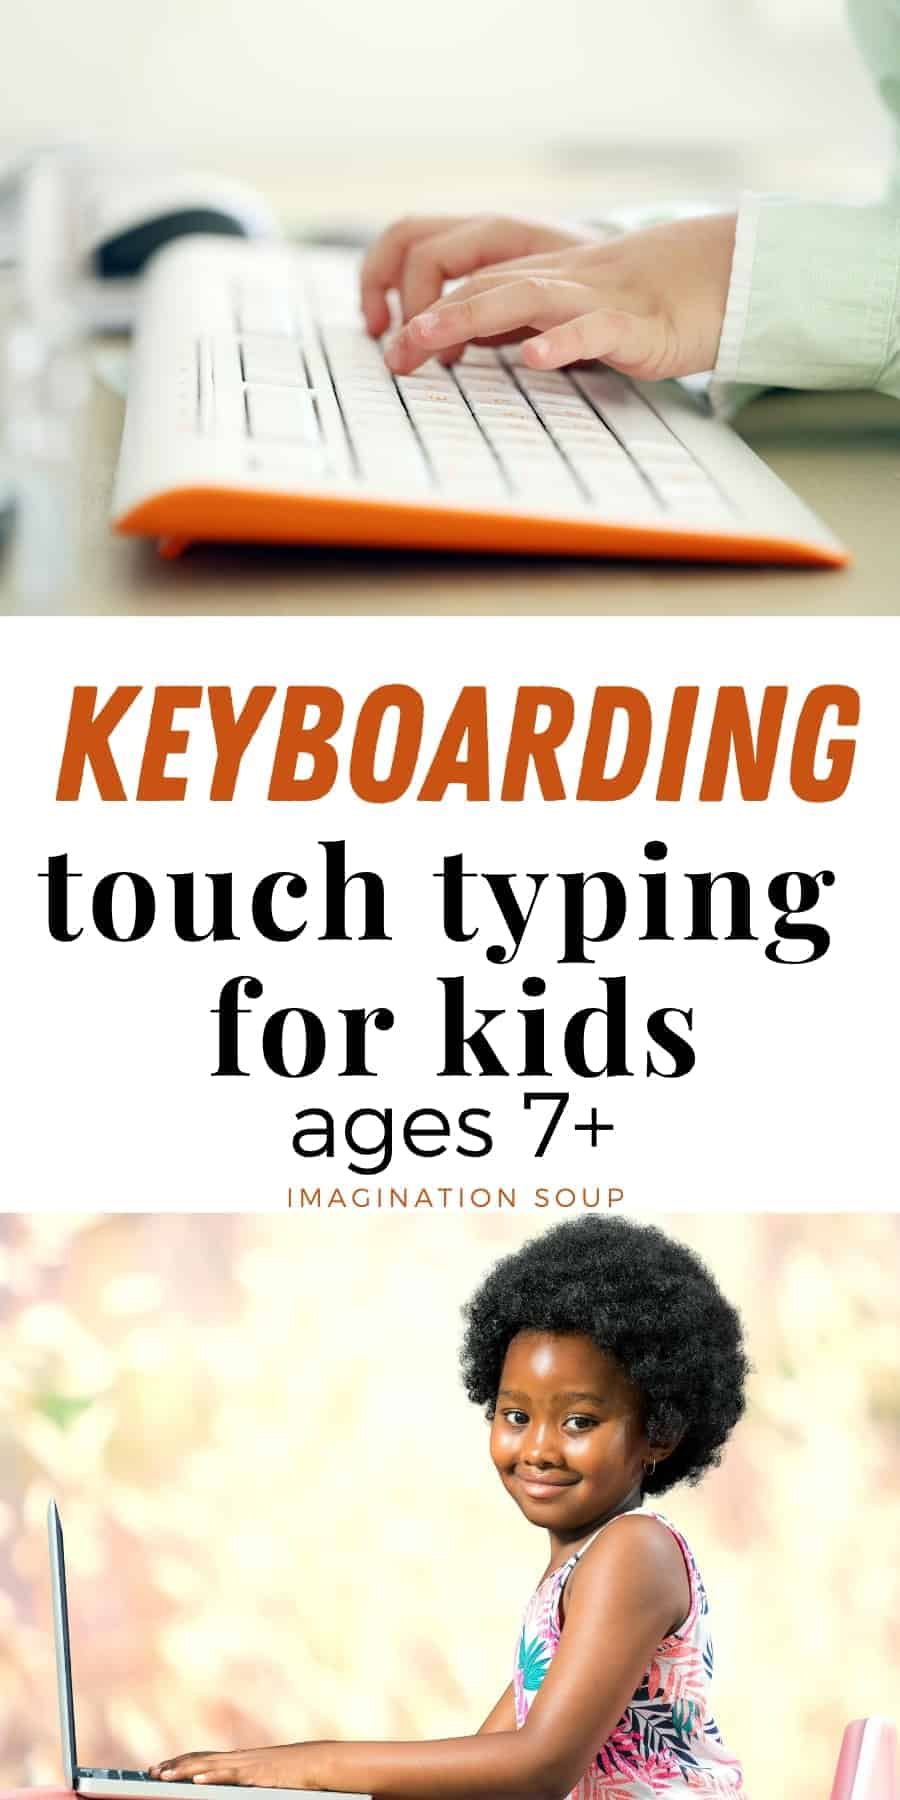 keyboarding touch typing for kids